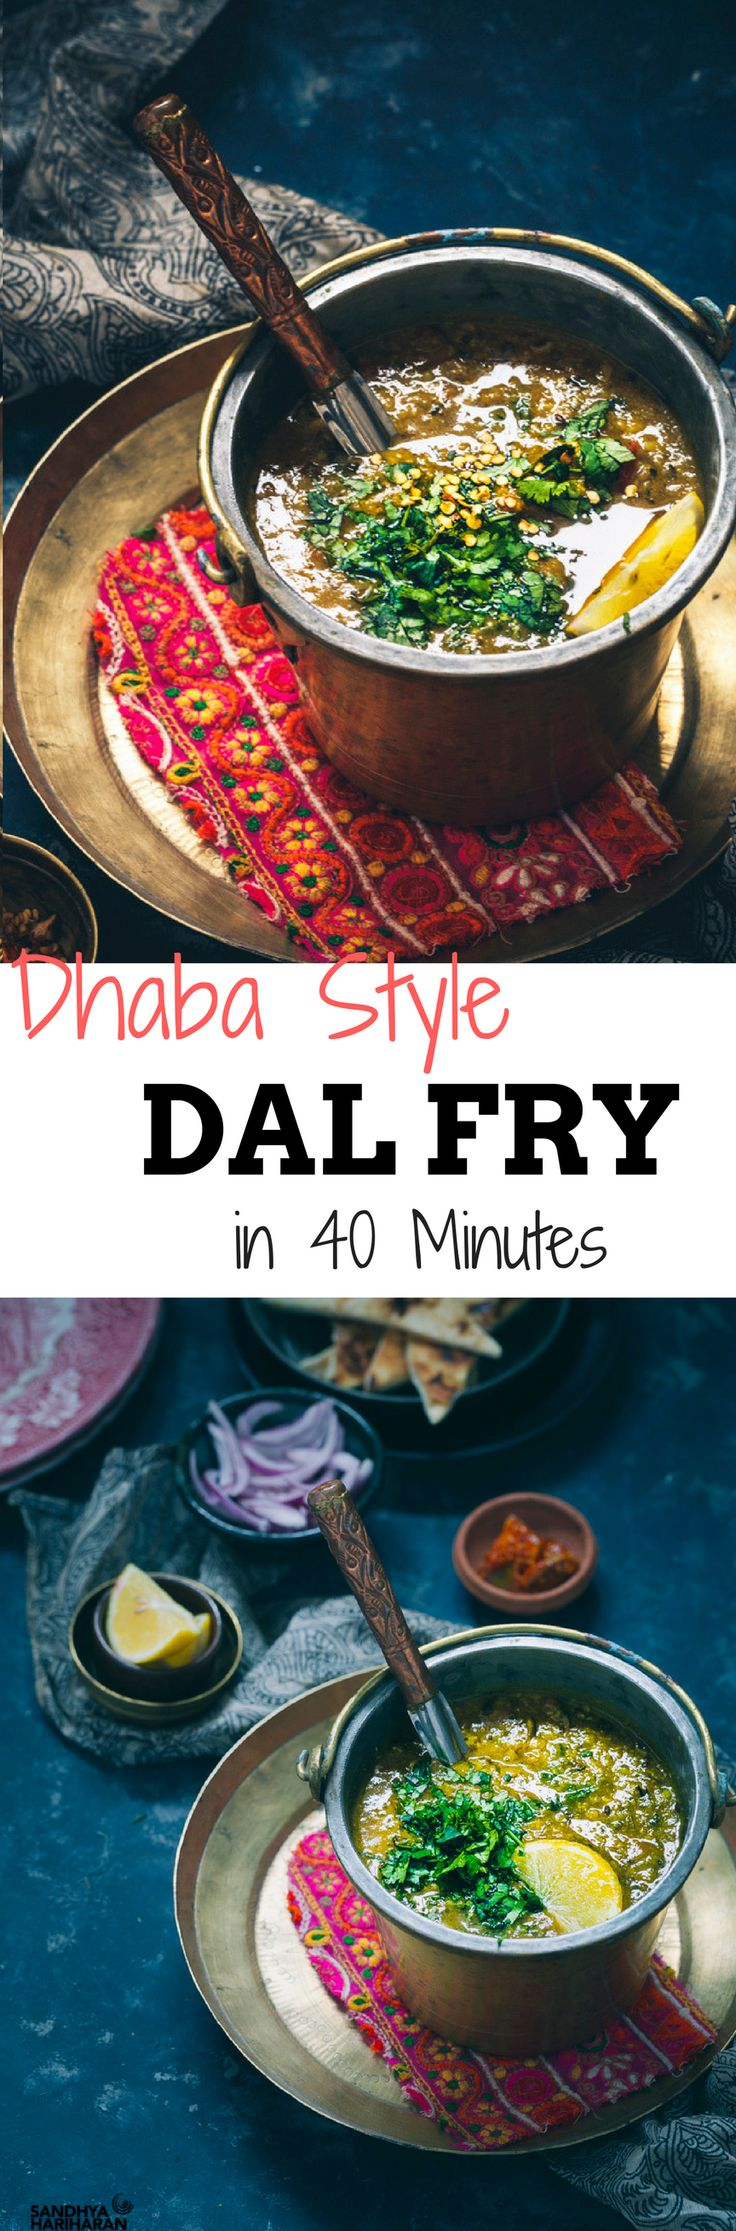 DHABA STYLE DAL FRY  is an inspiration from my countless visits to Punjabi Dhaba's during my India days. This Dal is super duper healthy with a combination of Lentils aka Dals like Tur Dal, Moong Dal, Chana Dal and Urid Dal.